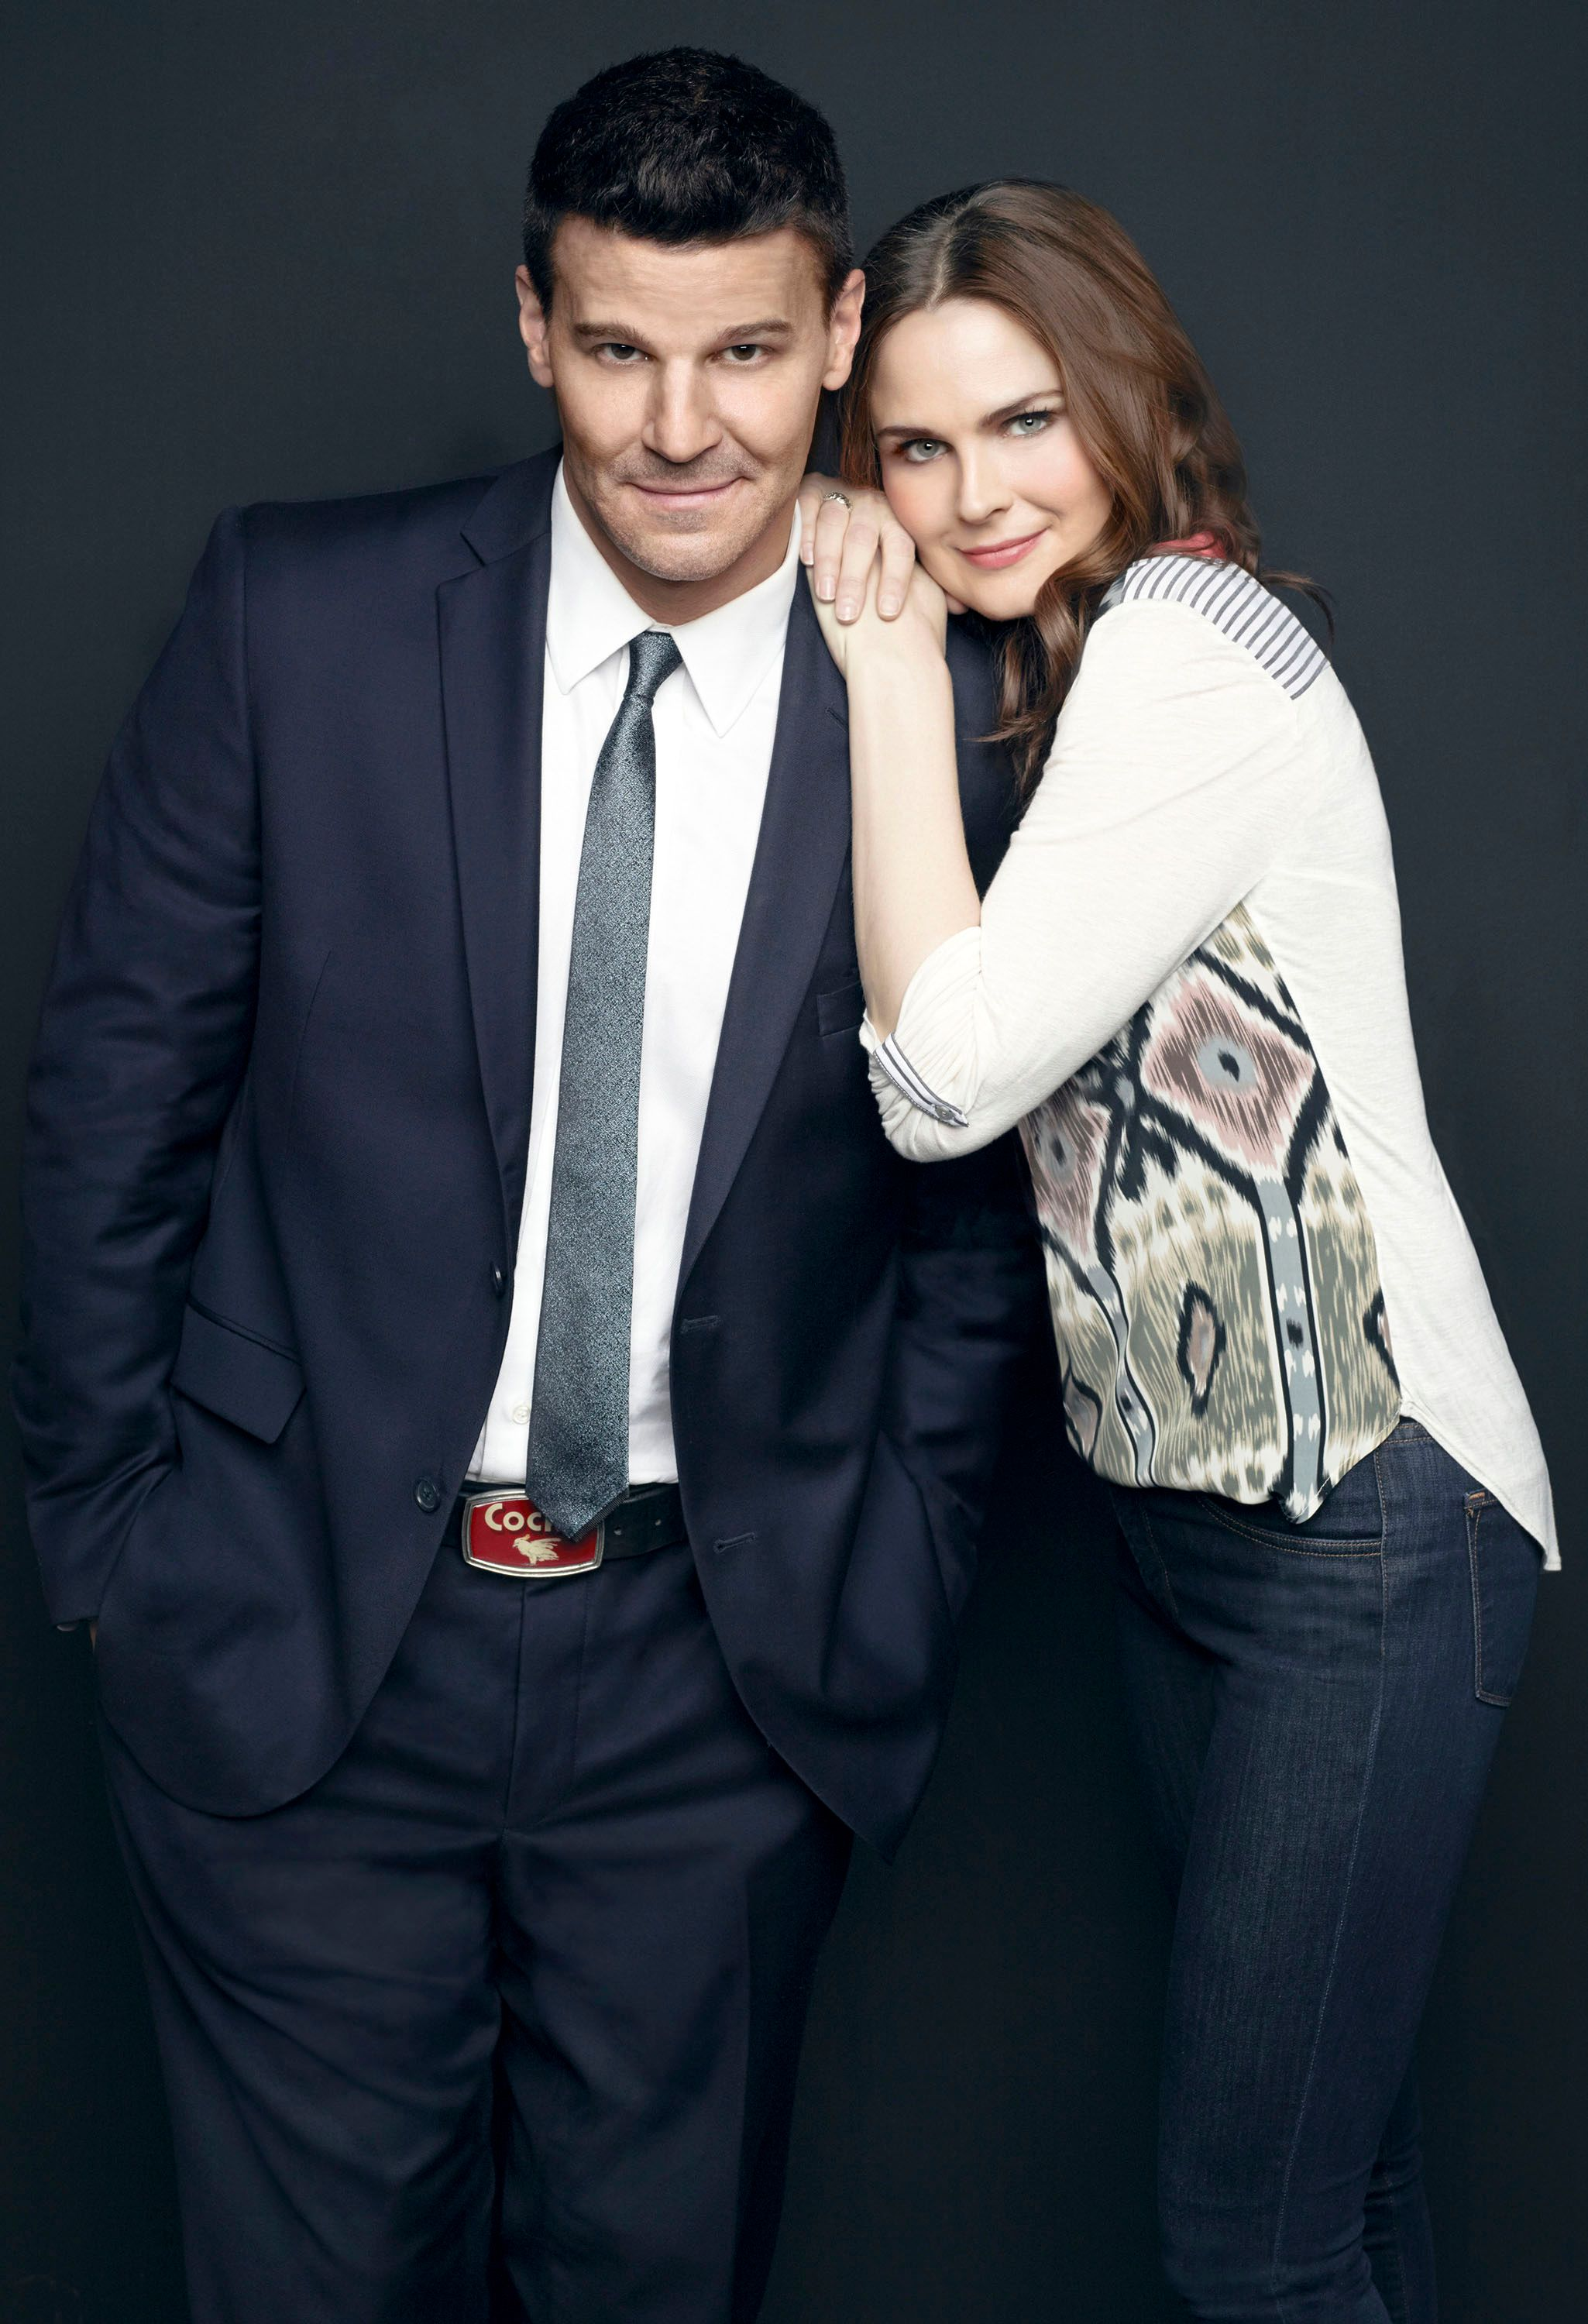 Bones Season 10 Interview: Showrunner Stephen Nathan ...